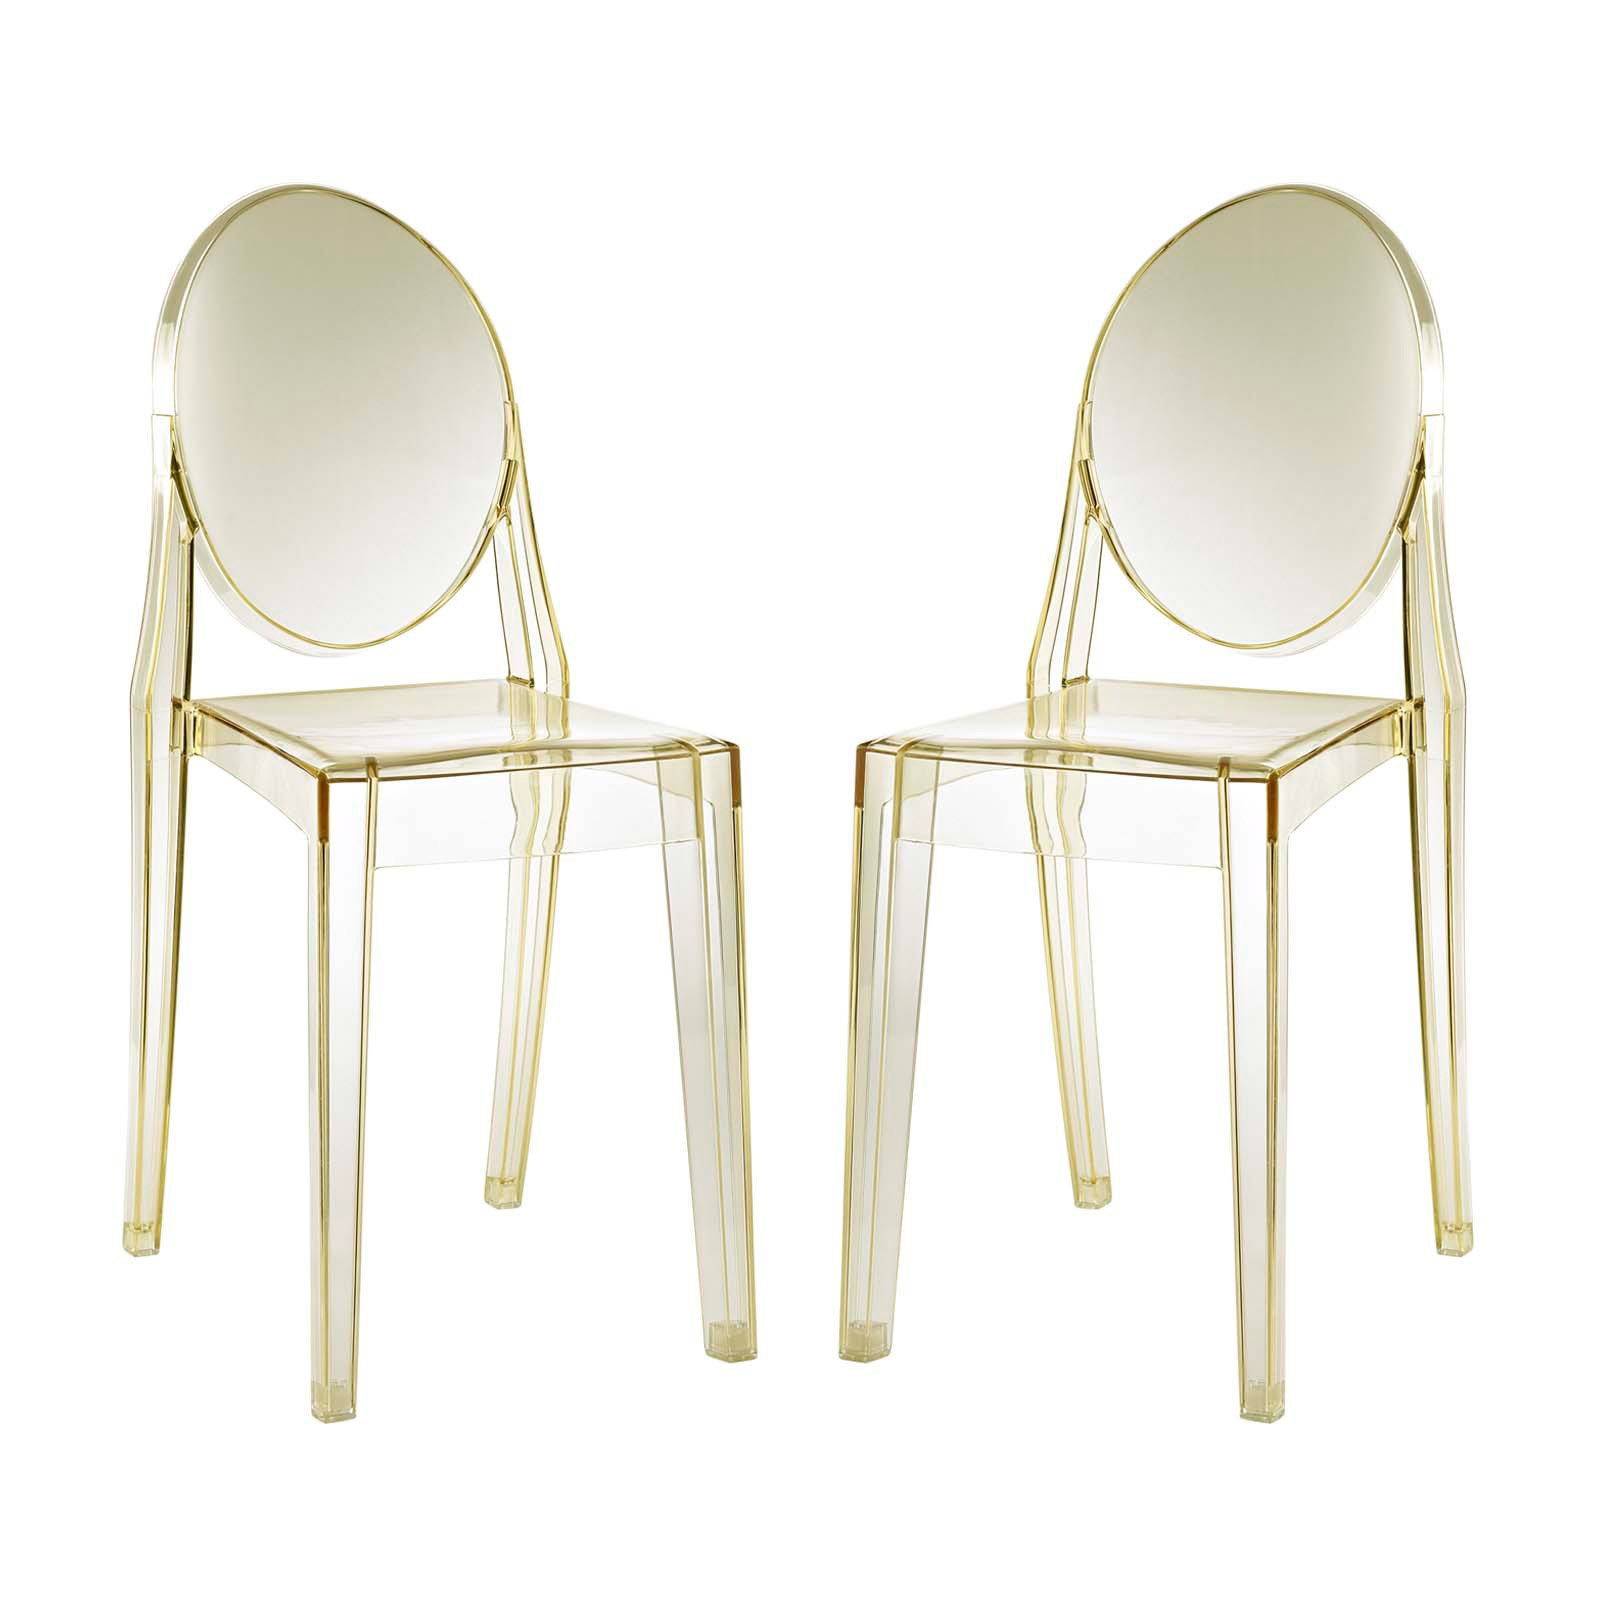 Modway Casper Dining Side Chairs, Set of 2, Multiple Colors